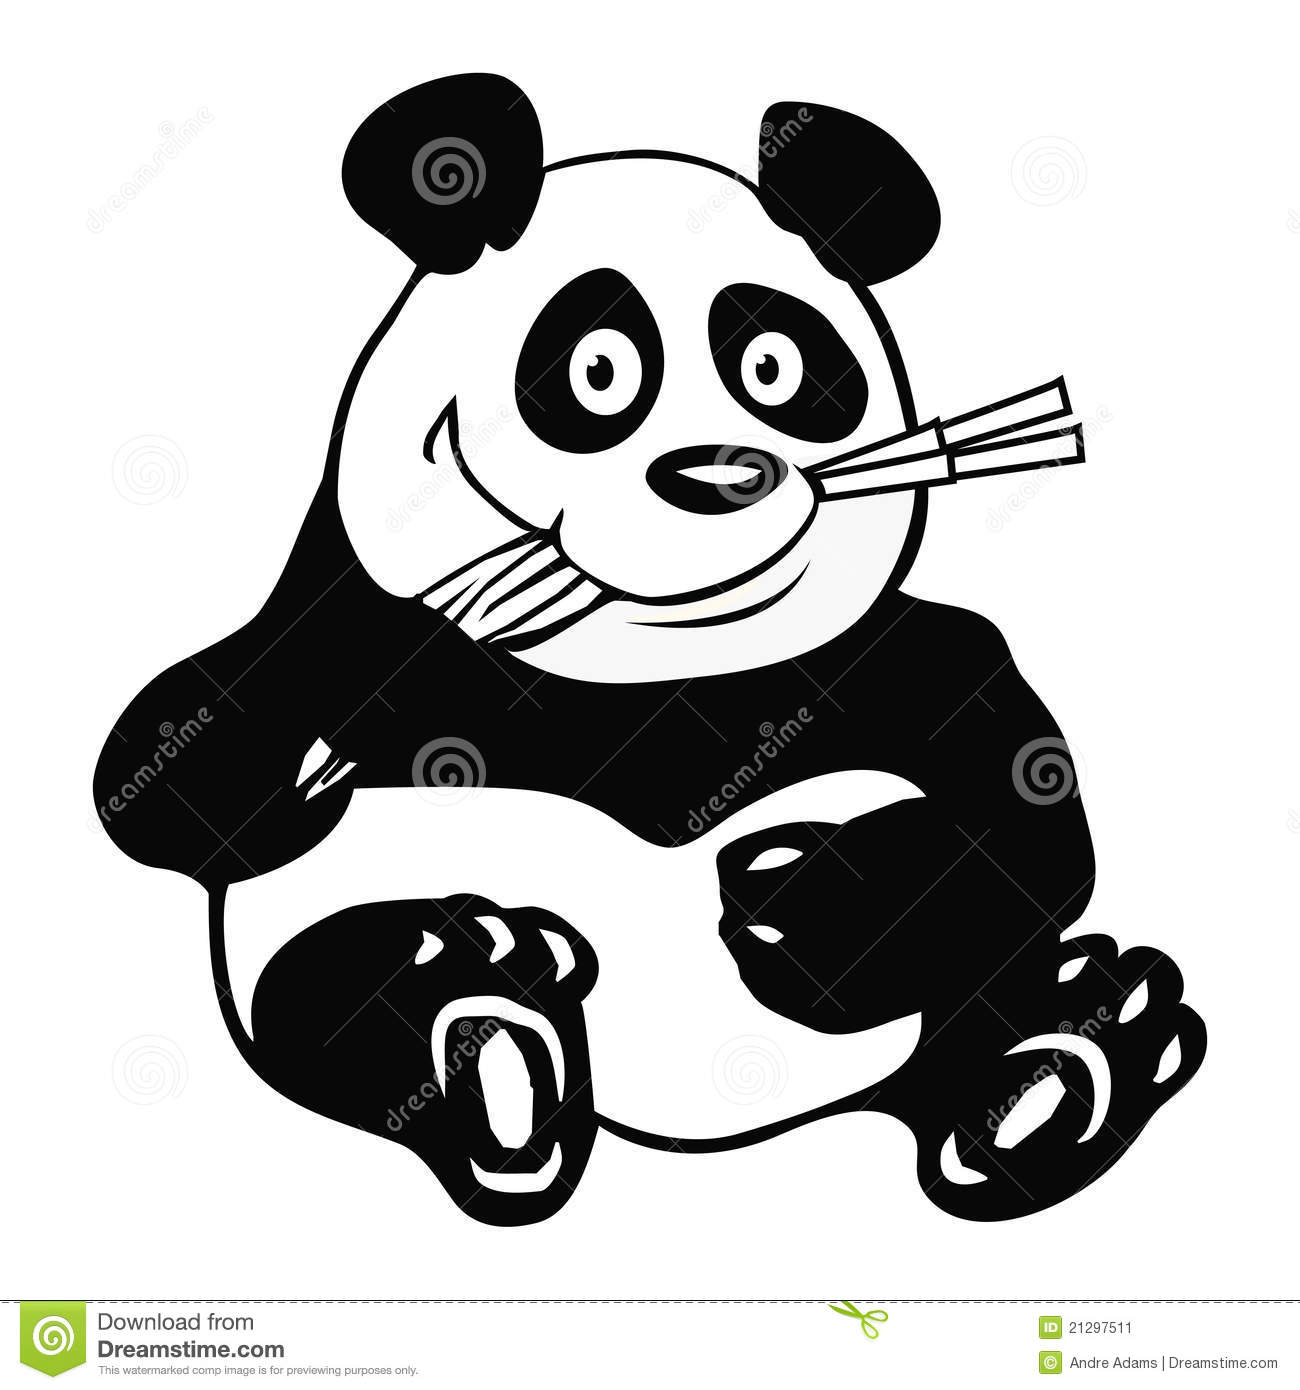 Panda Bamboo Outline Stock Vector Illustration Of Cute 21297511